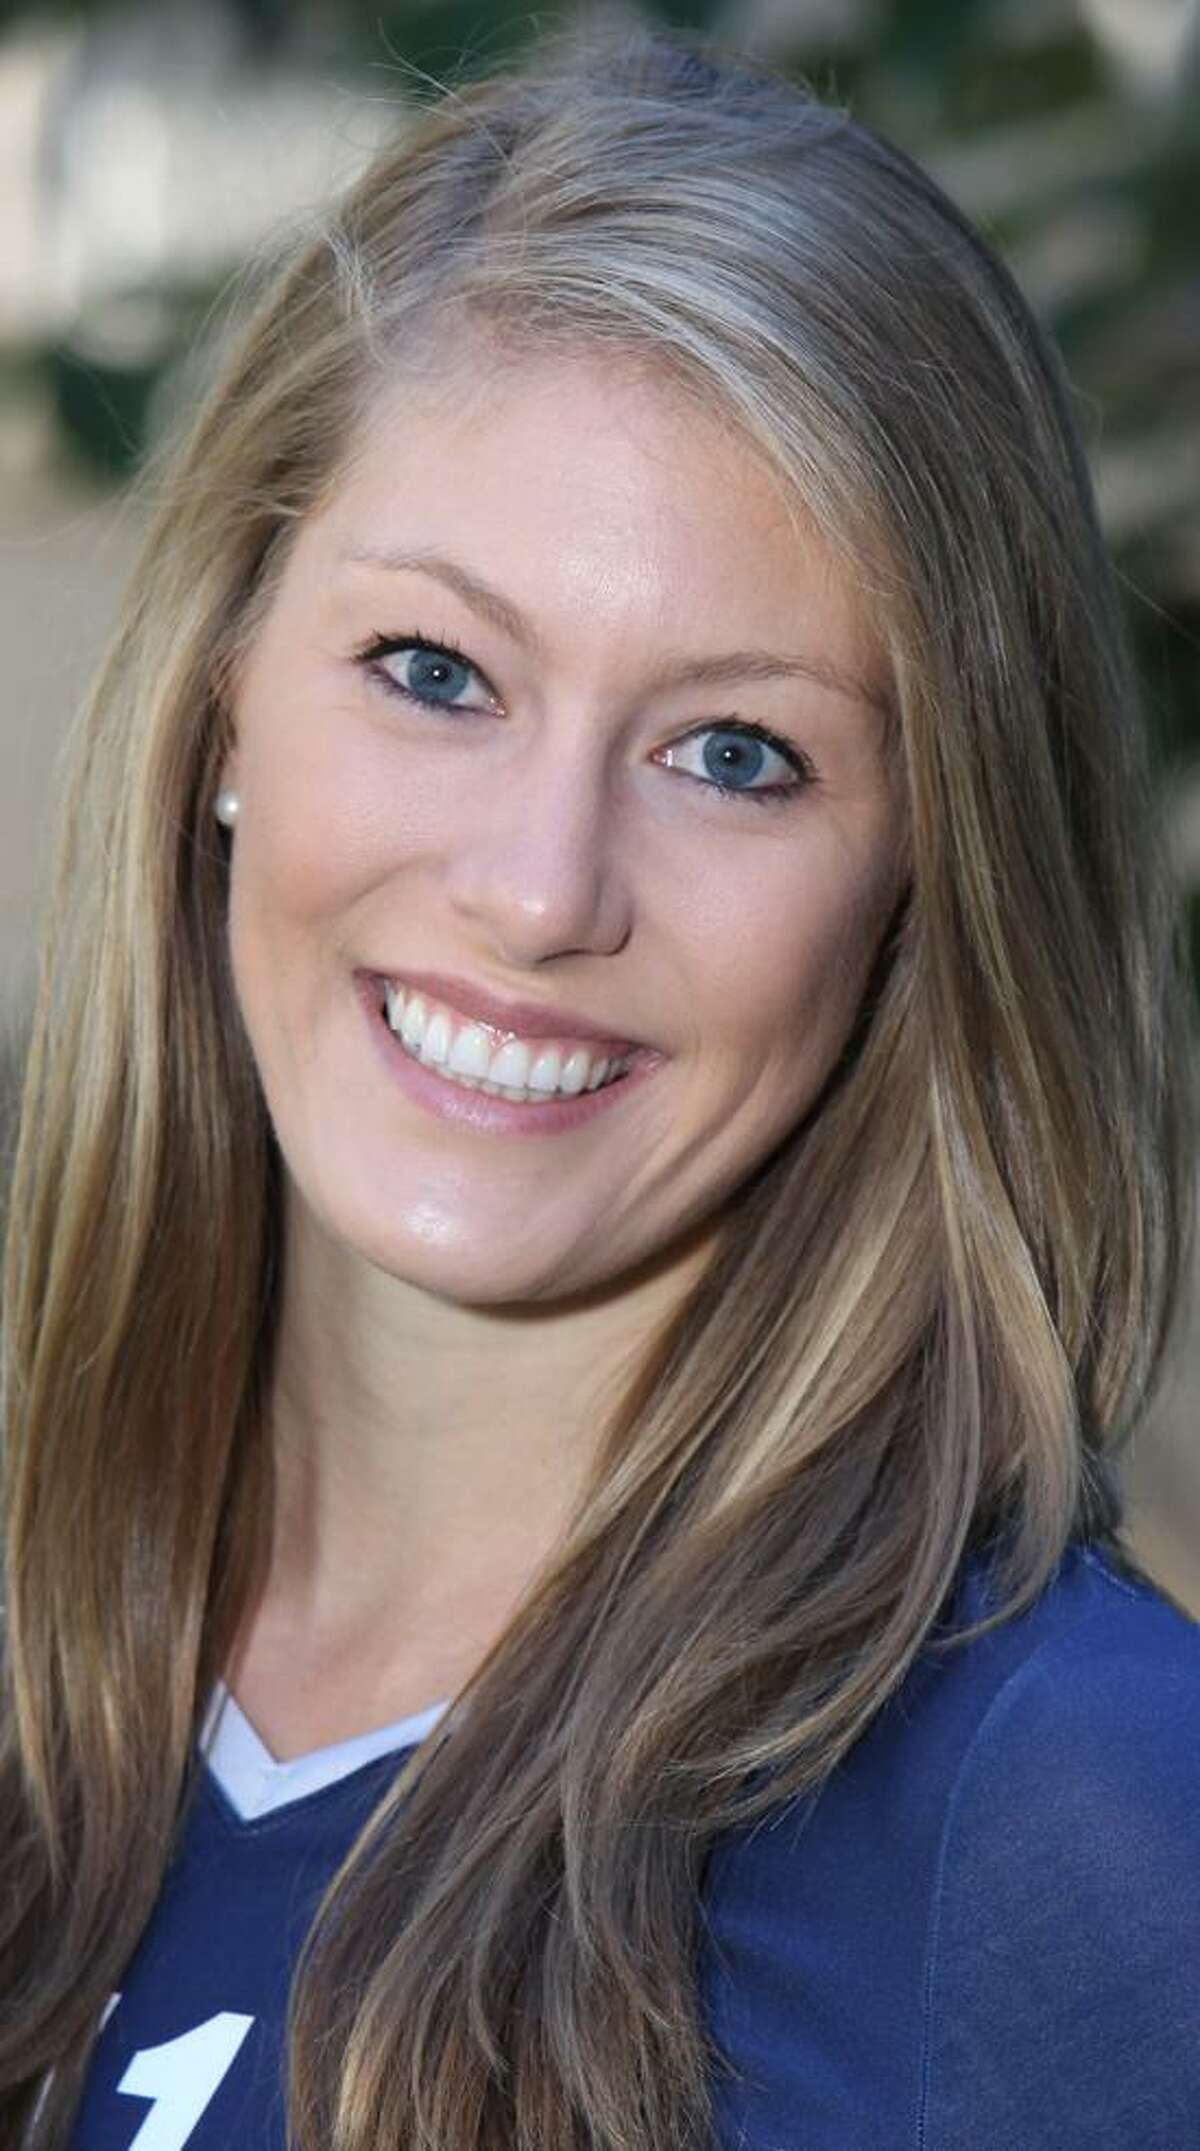 Yale volleyball player Taylor Cramm. (Photo courtesy of Yale Athletics)